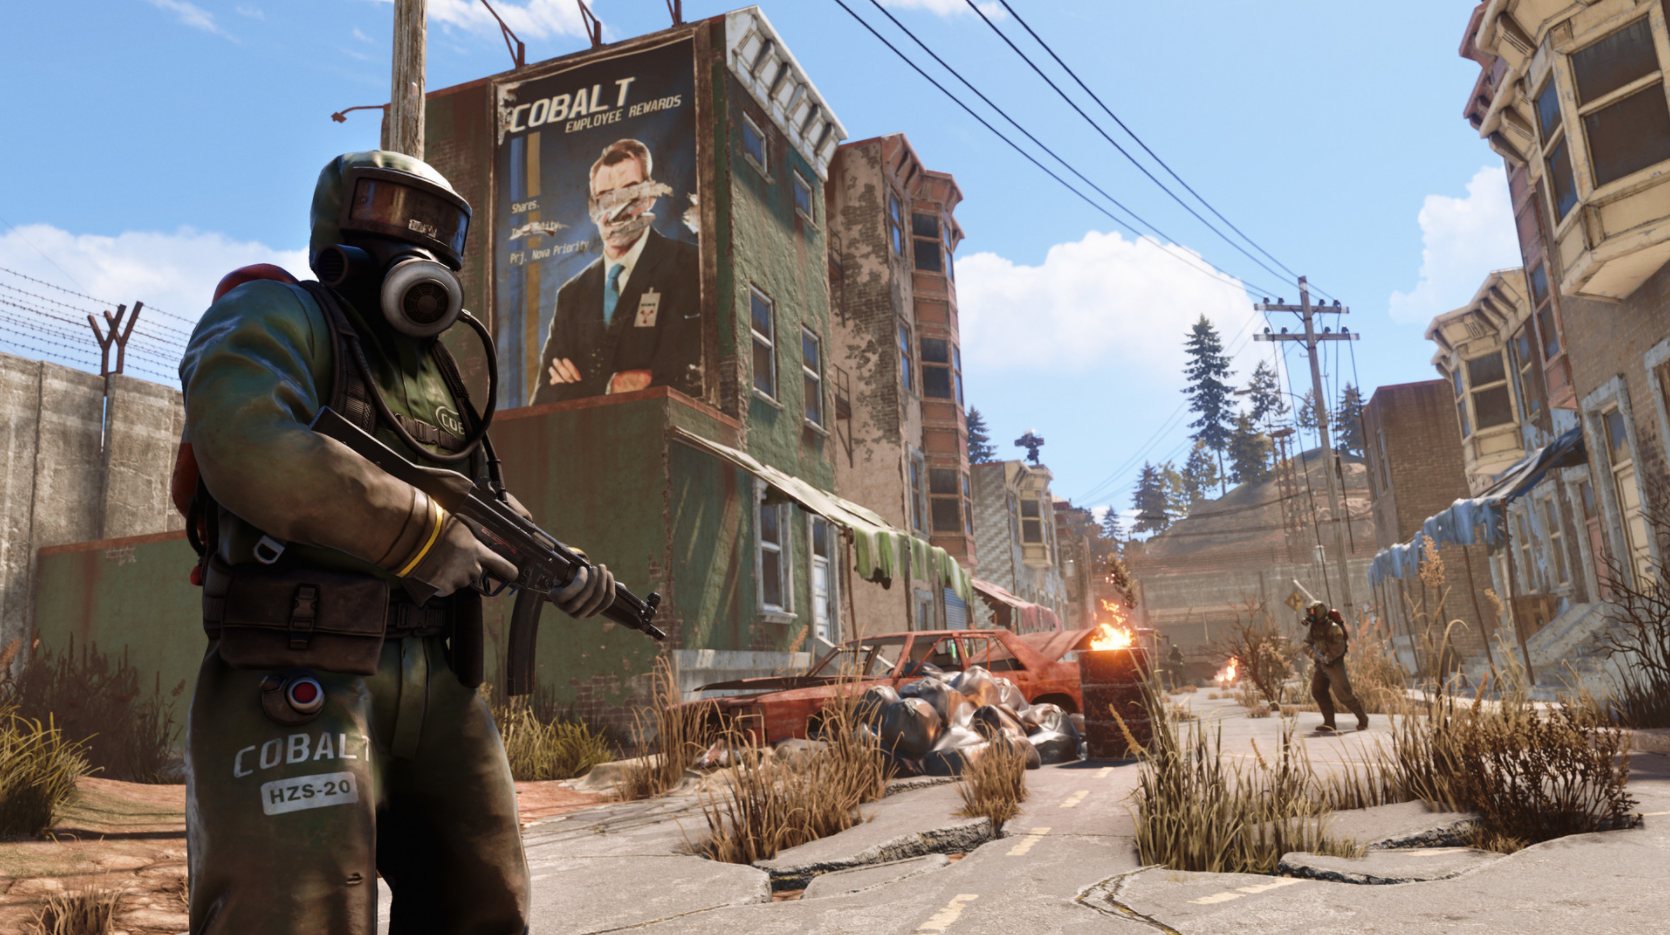 rust-on-ps4-may-have-cross-play-with-xbox-when-it-finally-launches